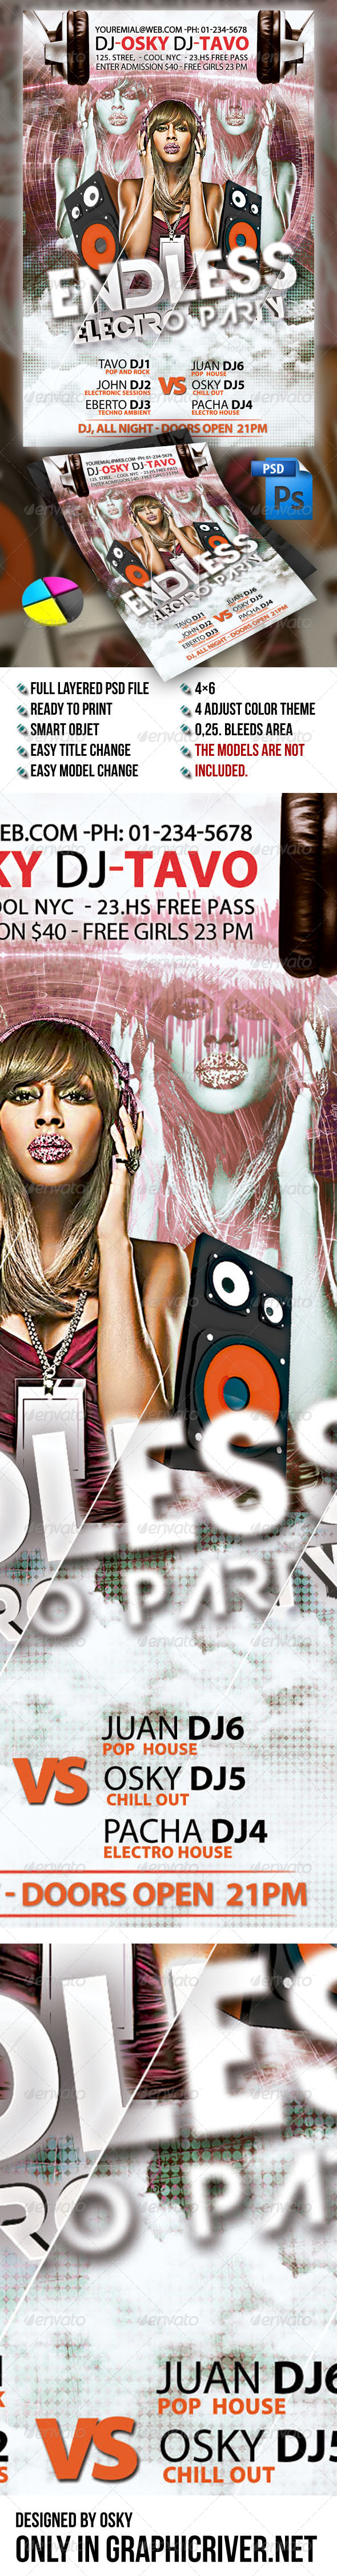 GraphicRiver Endless Electro Party 5338122